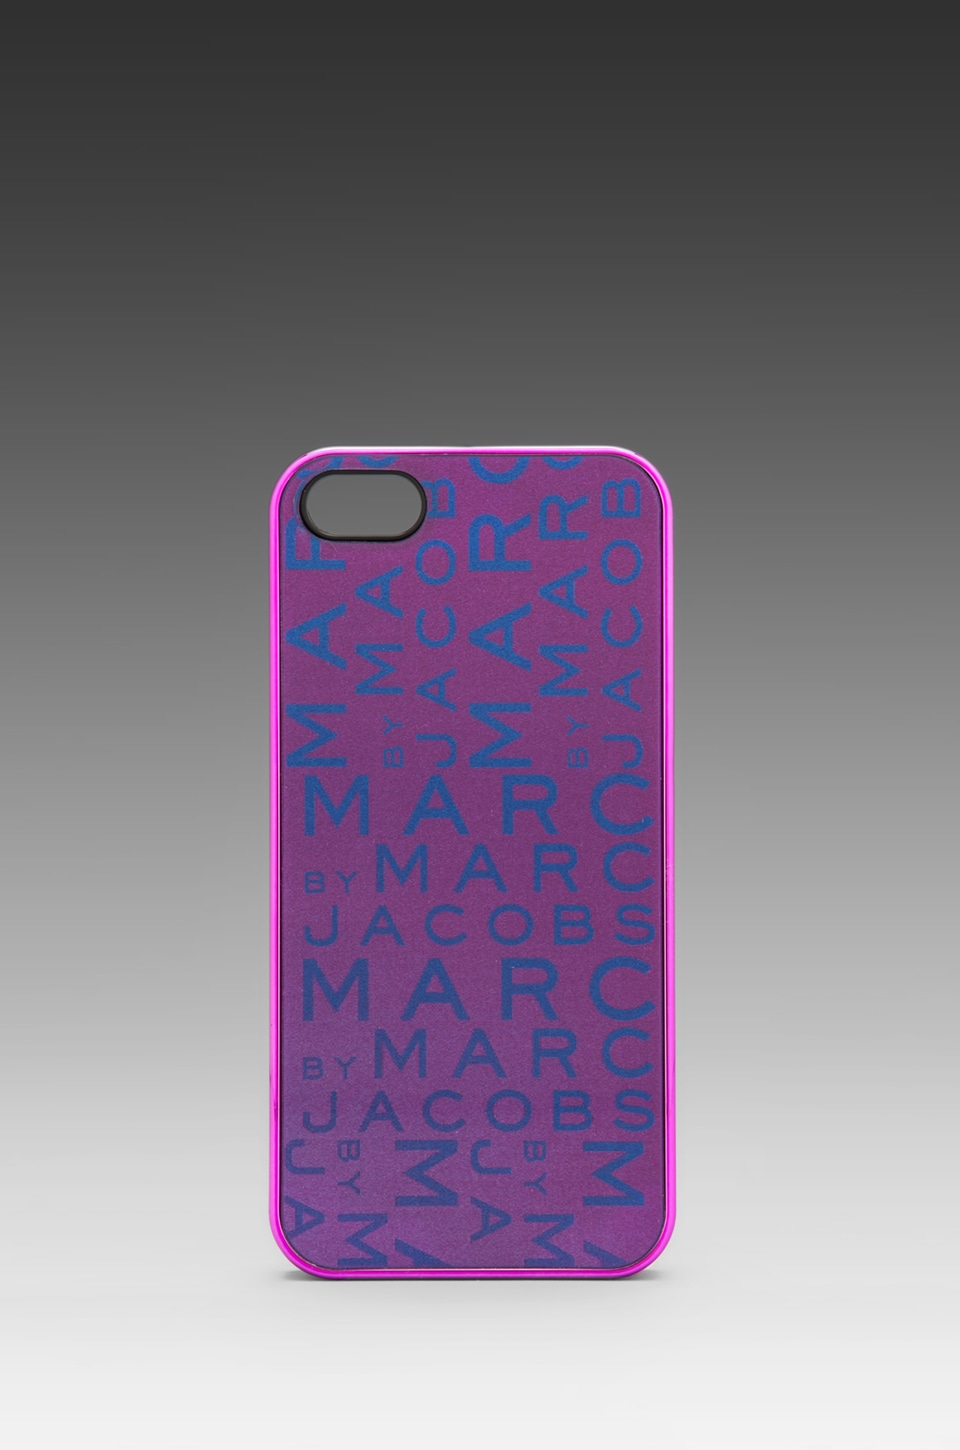 Marc by Marc Jacobs New Jumble Lenticular Phone Case in Amazon Purple Multi